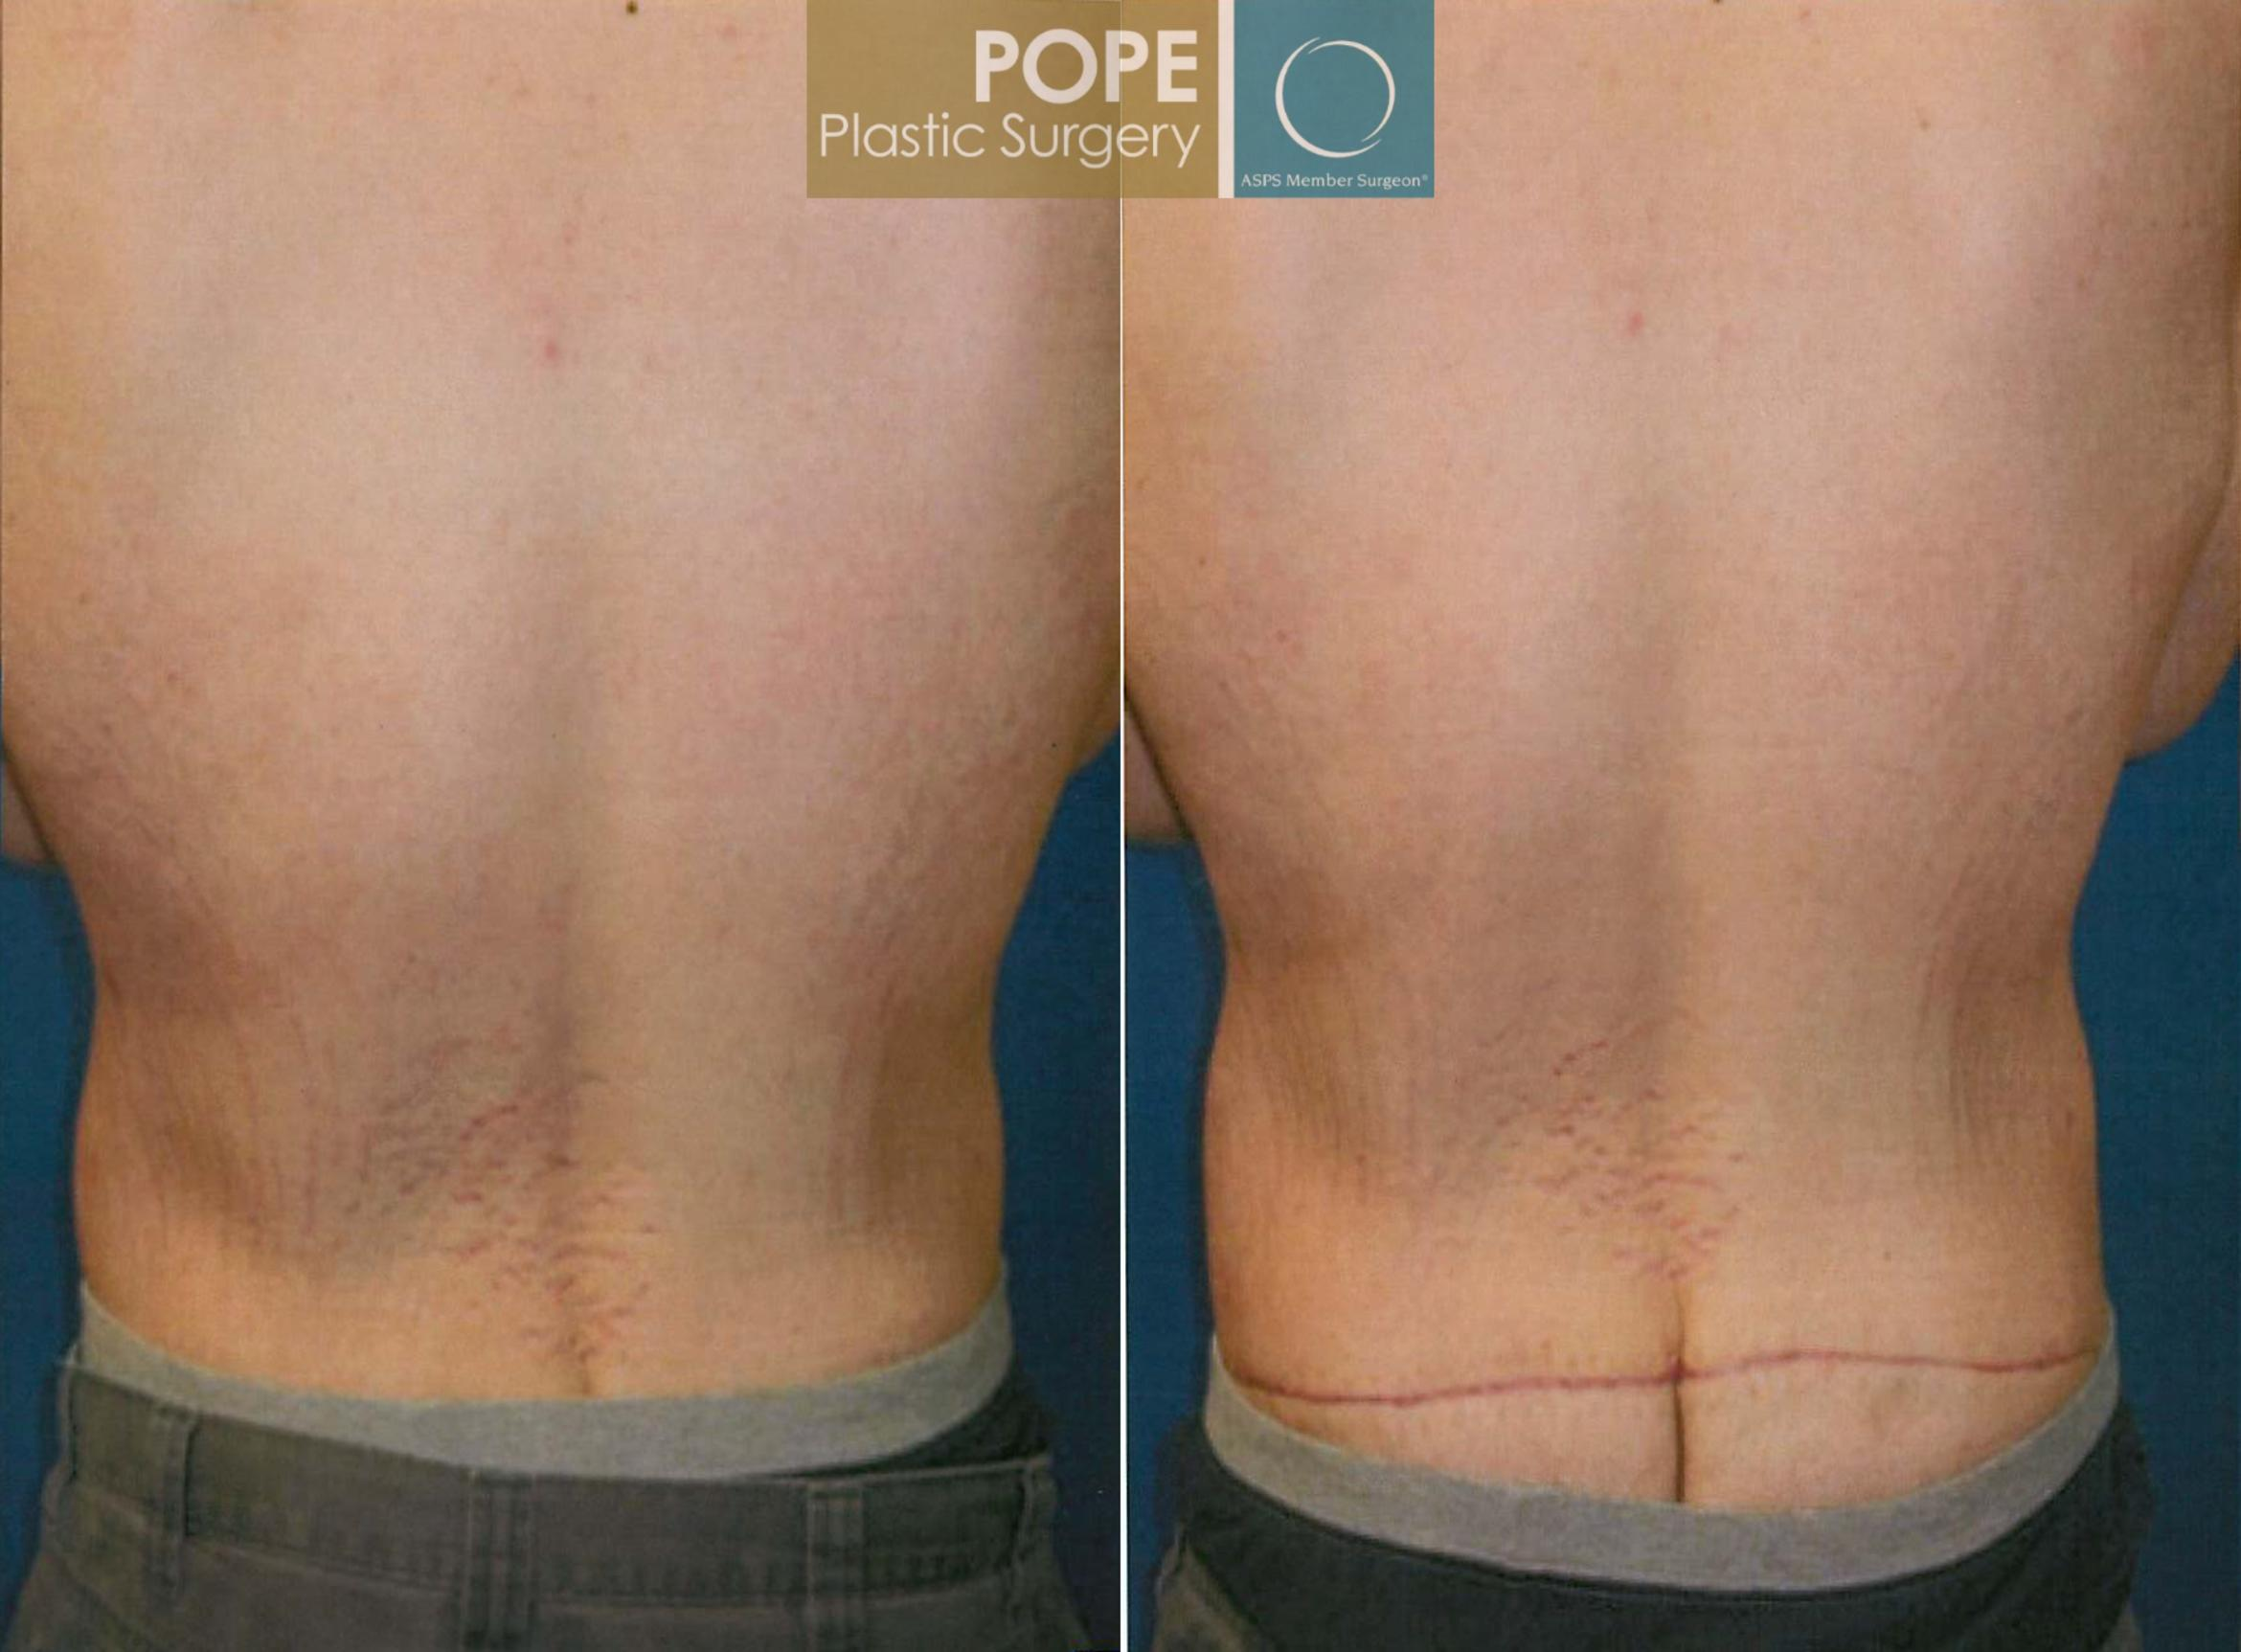 Body Lift Case 183 Before & After View #1 | Orlando, FL | Pope Plastic Surgery